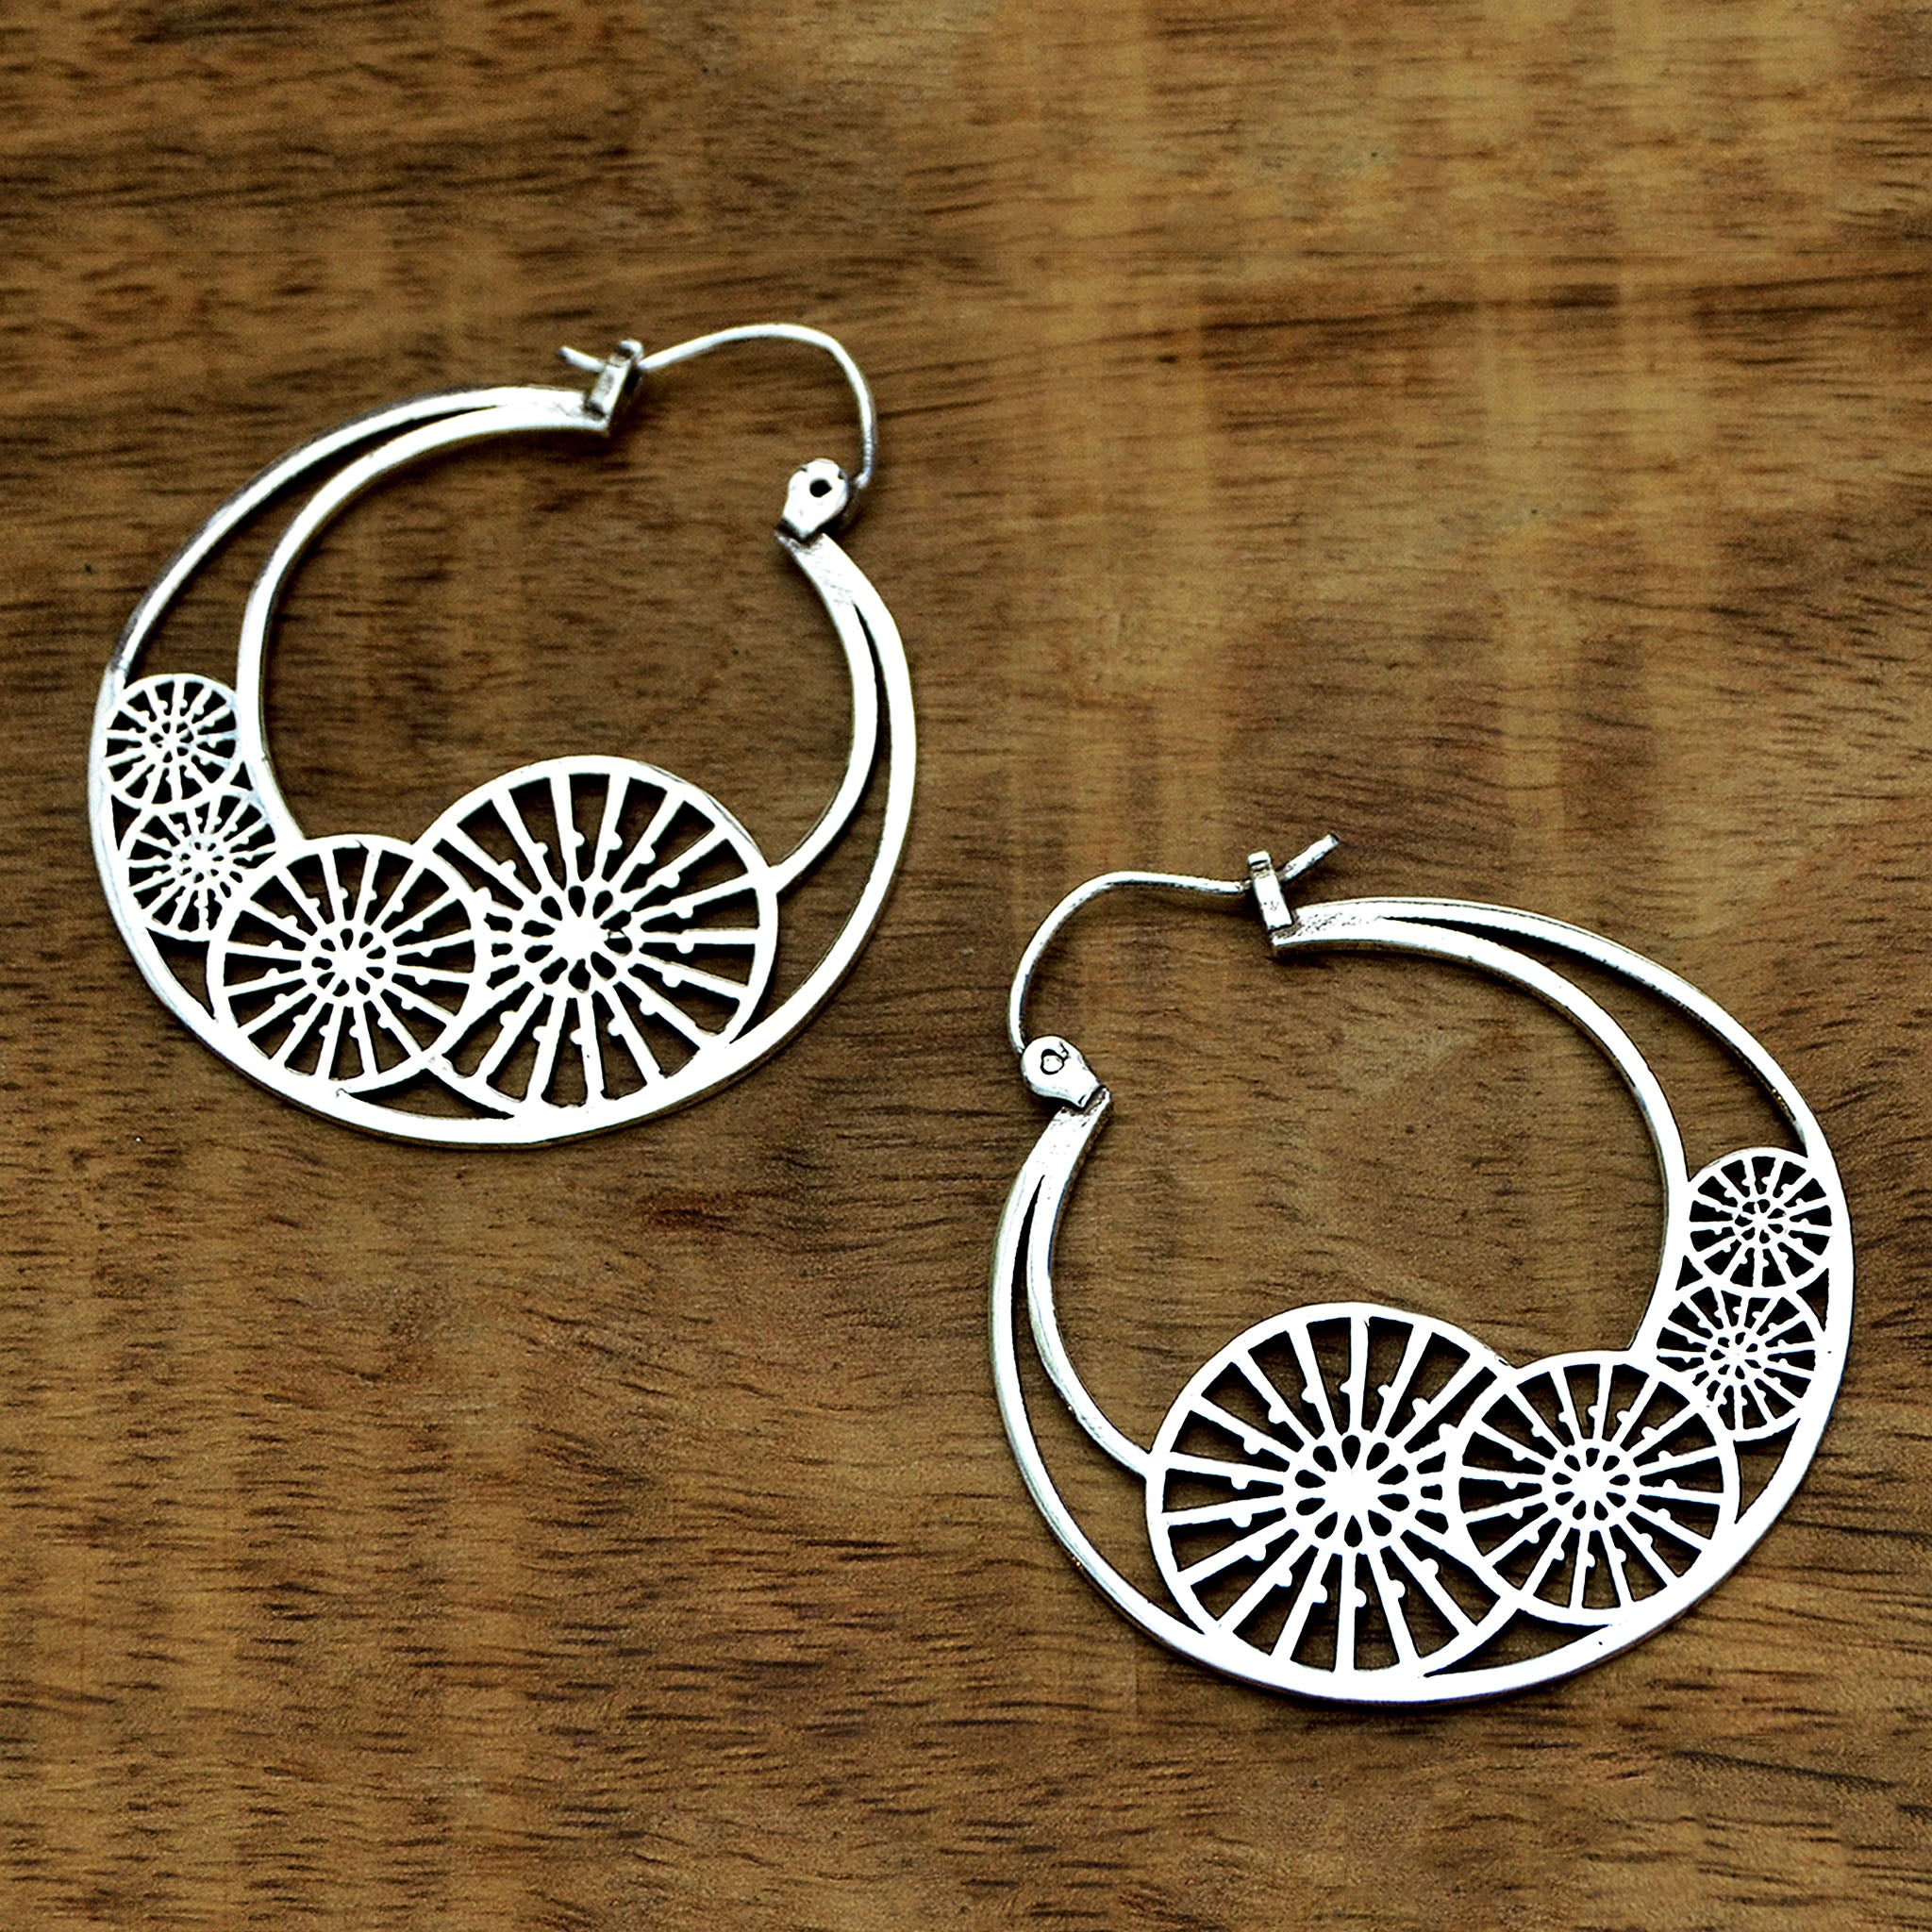 Ethiic hoop earrings